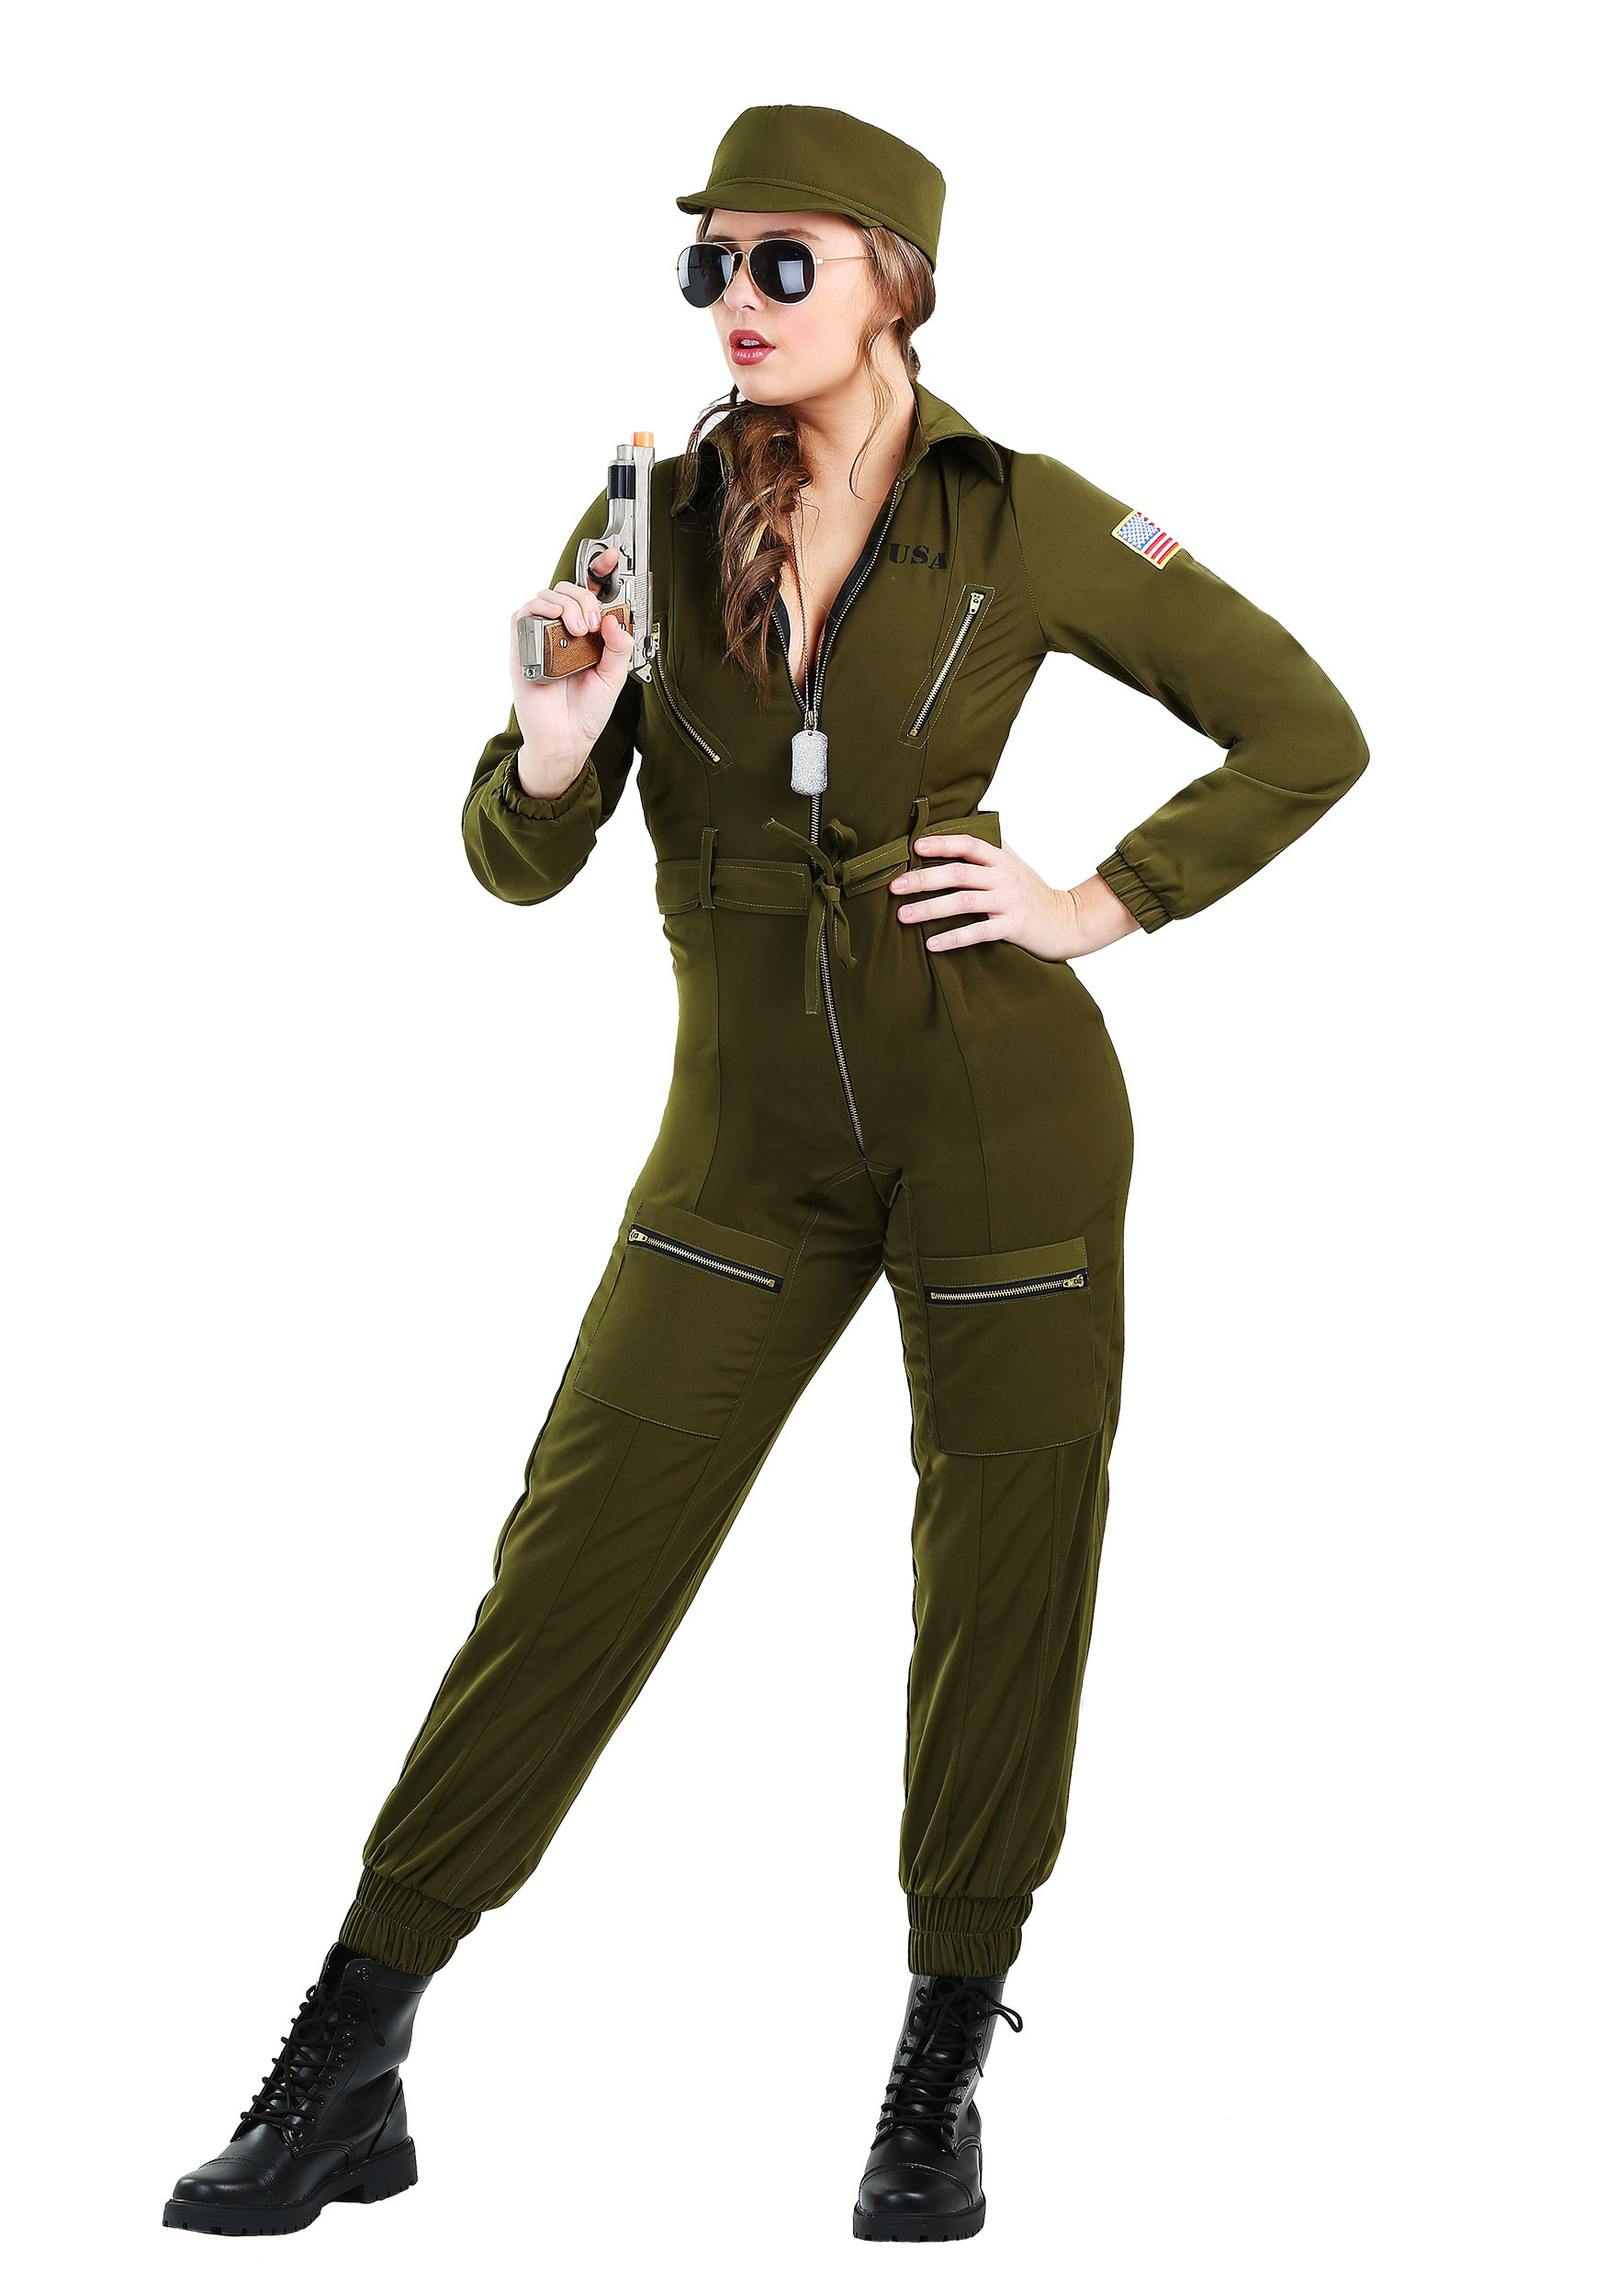 1d65e63fec57 Womens Army Flightsuit Costume